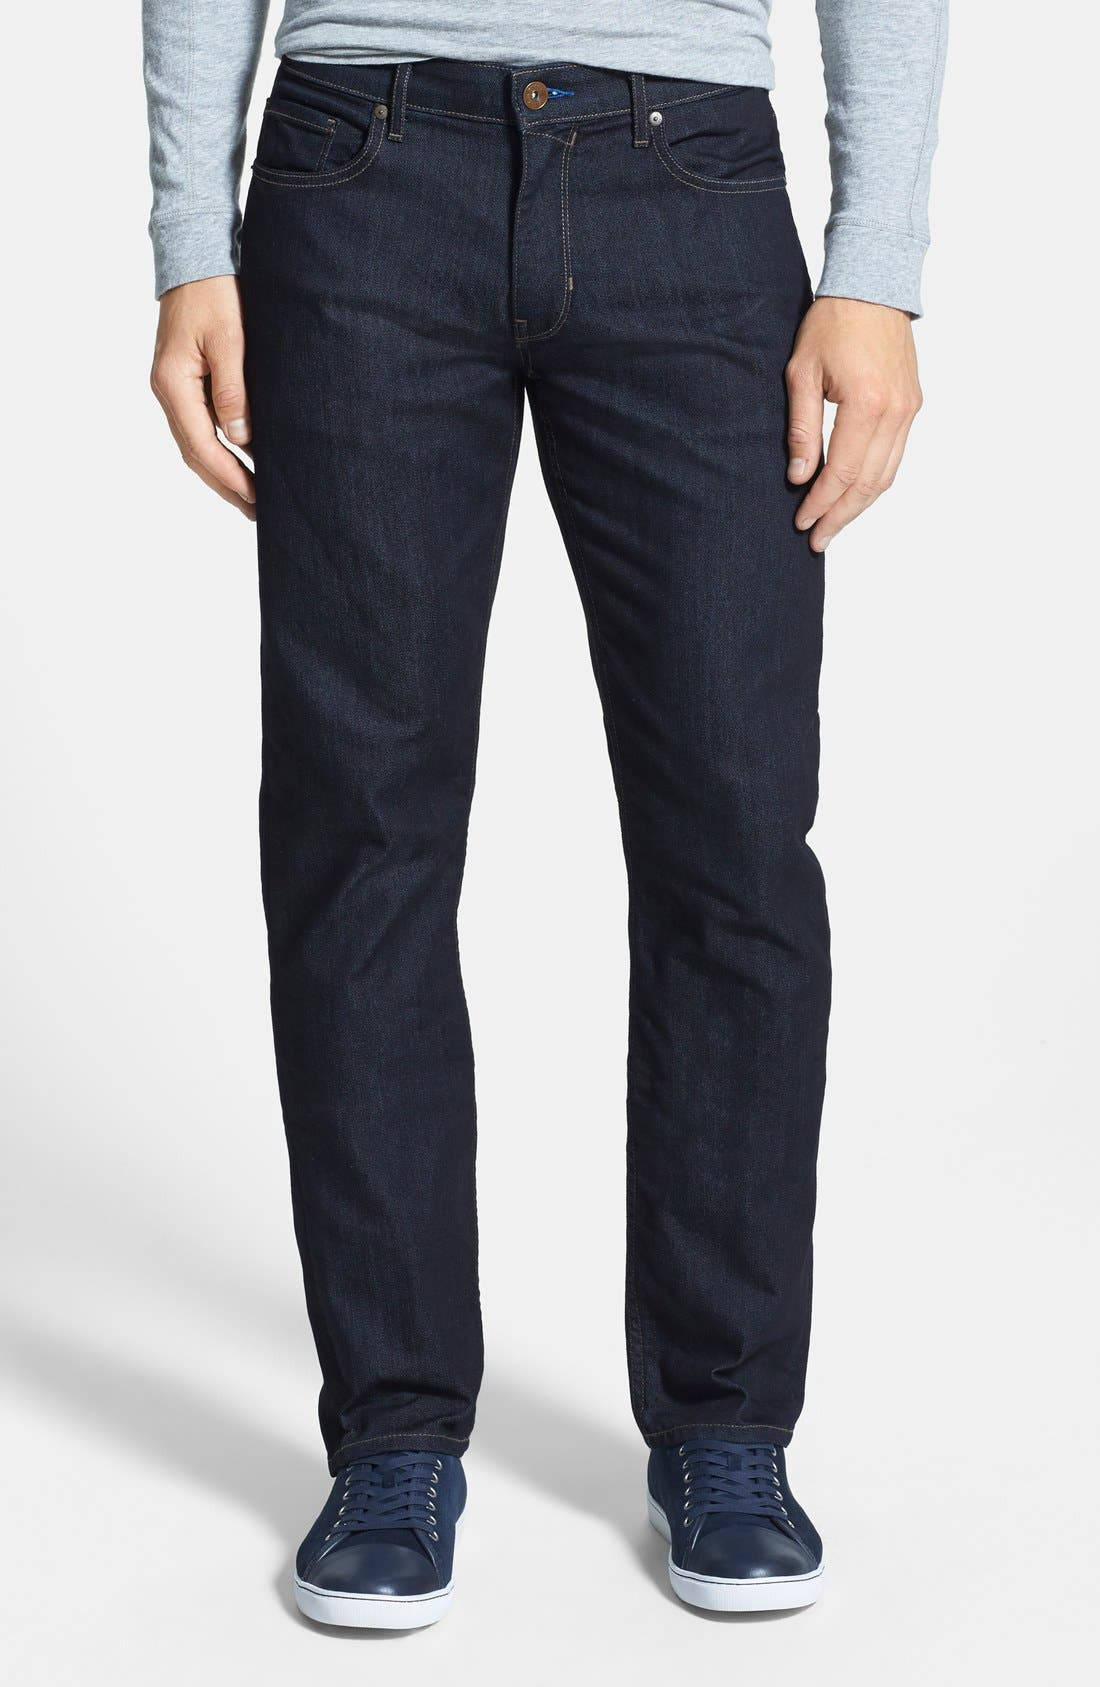 'Normandie' Straight Leg Jeans,                         Main,                         color, Backstage